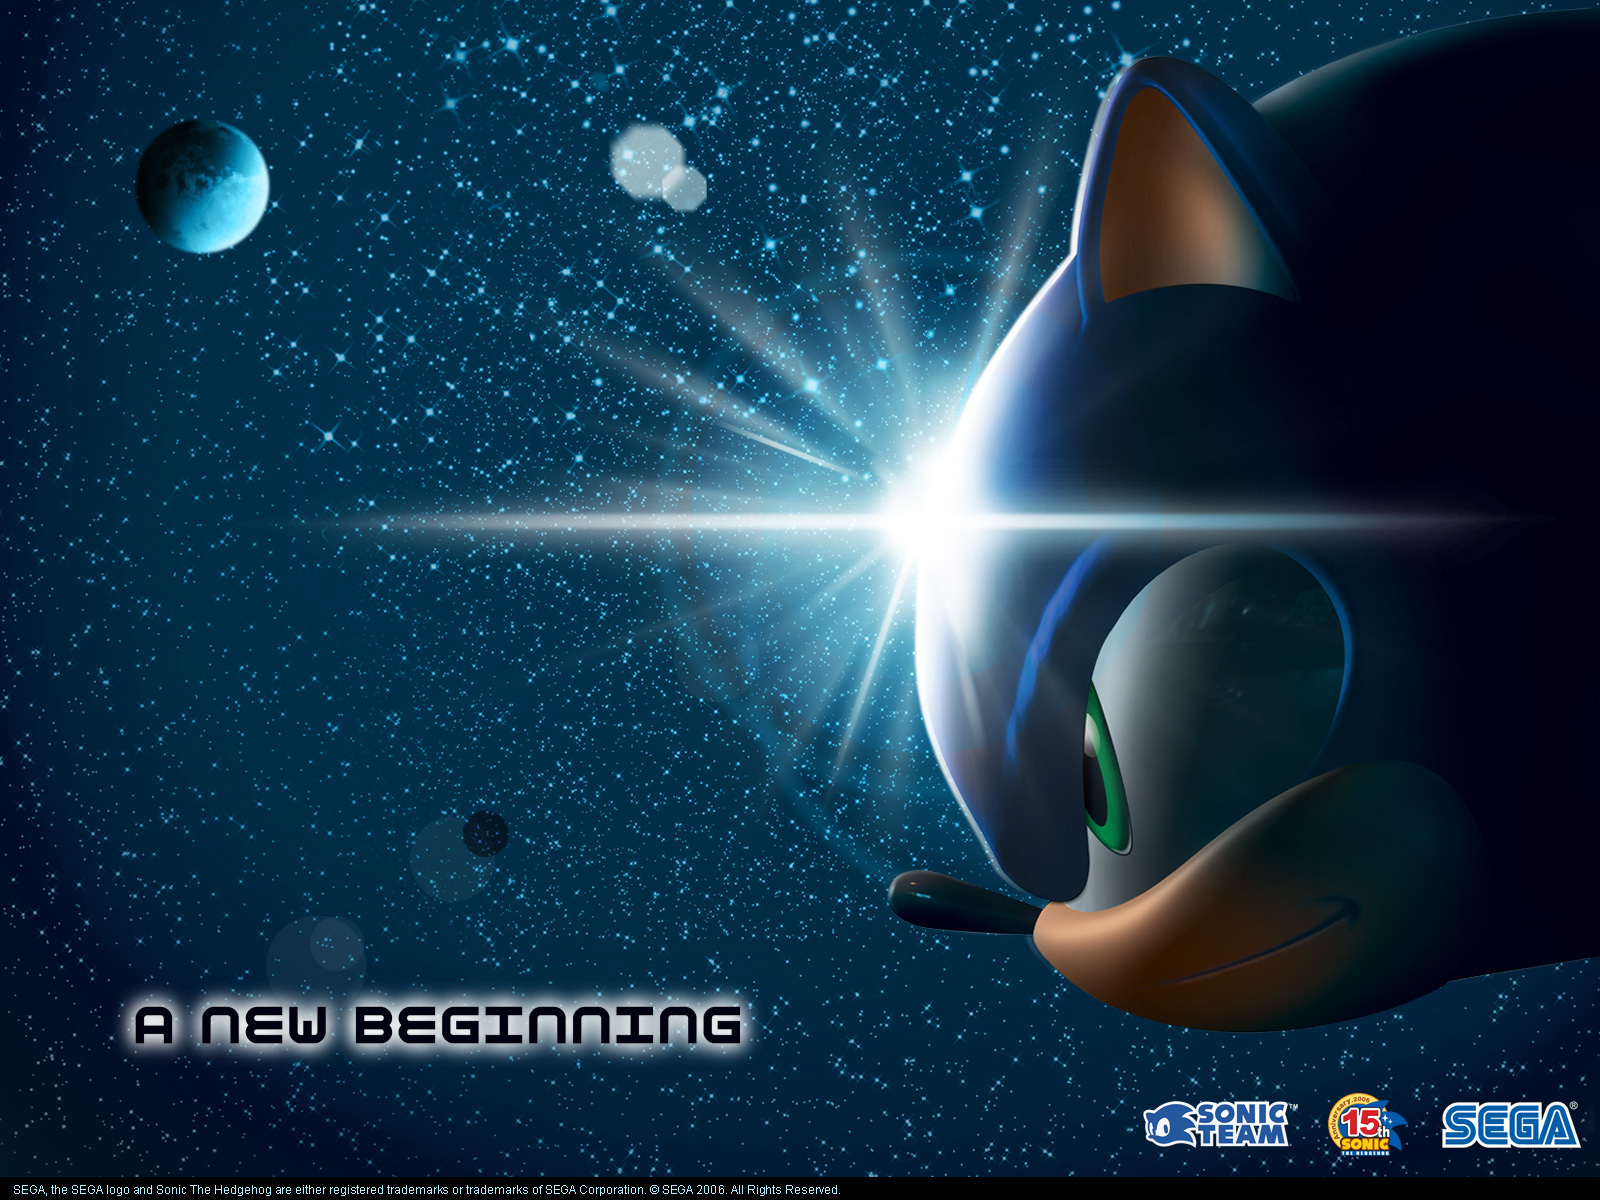 Sonic-the-Hedgehog-sonic-characters-2043769-1600-1200.jpg